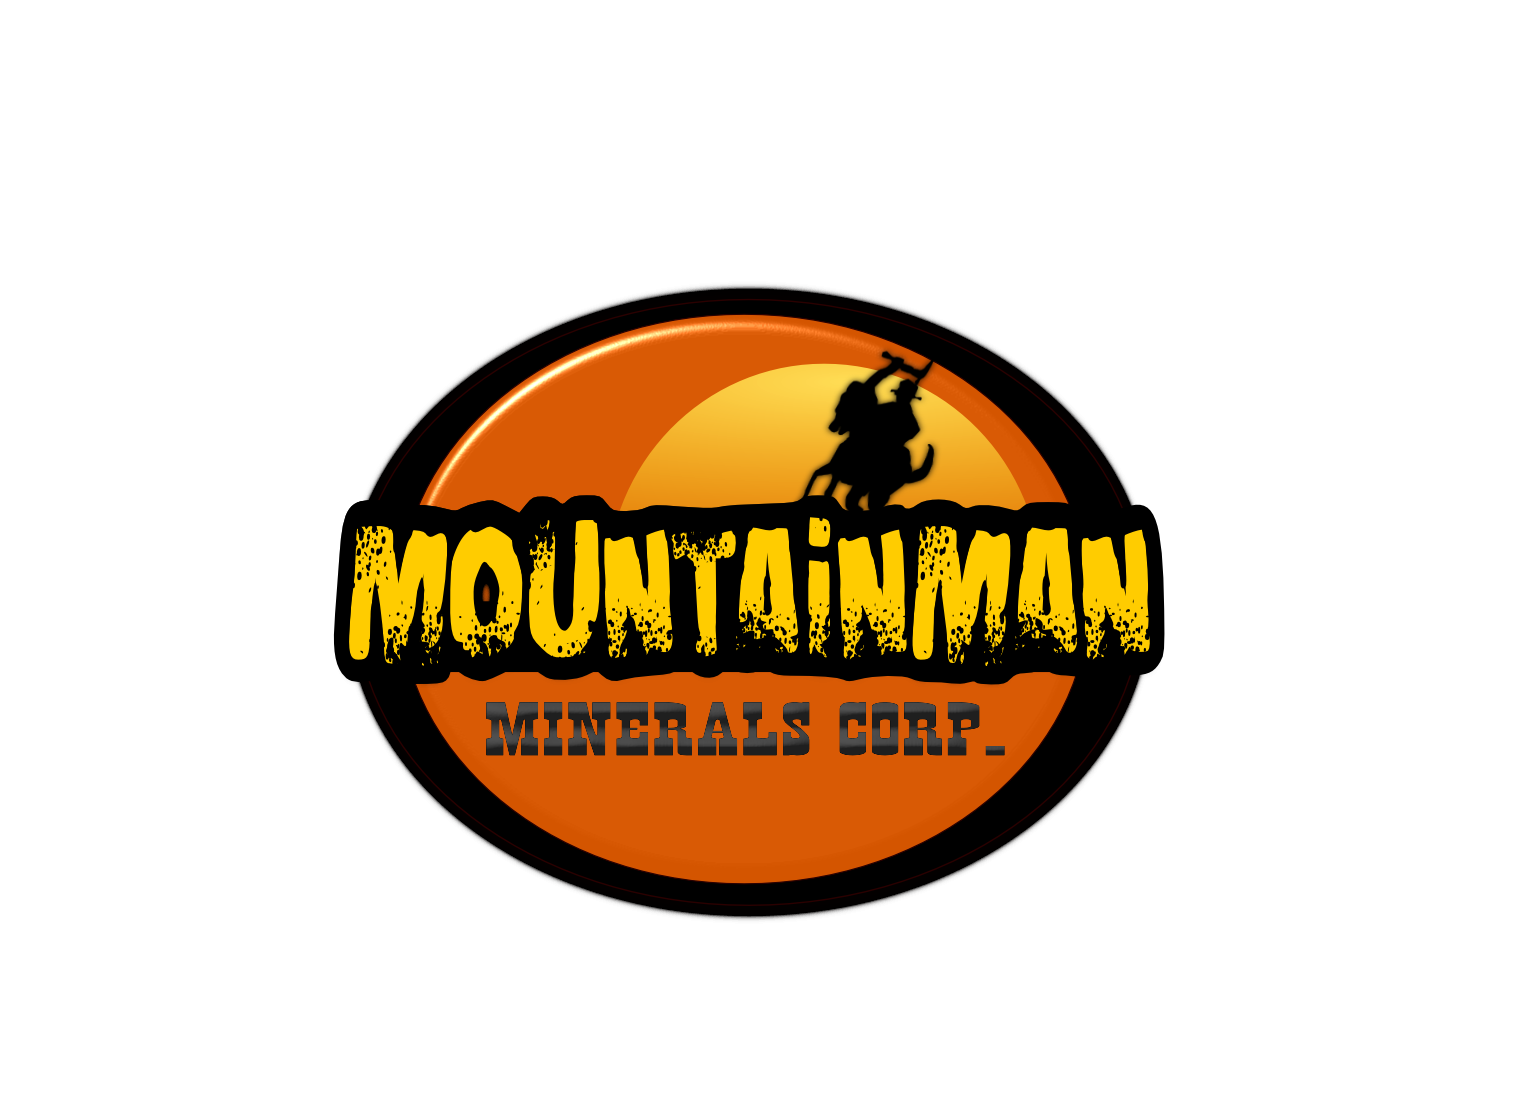 Logo Design by Joseph calunsag Cagaanan - Entry No. 18 in the Logo Design Contest Mountian Man Minerals Corp. Logo Design.